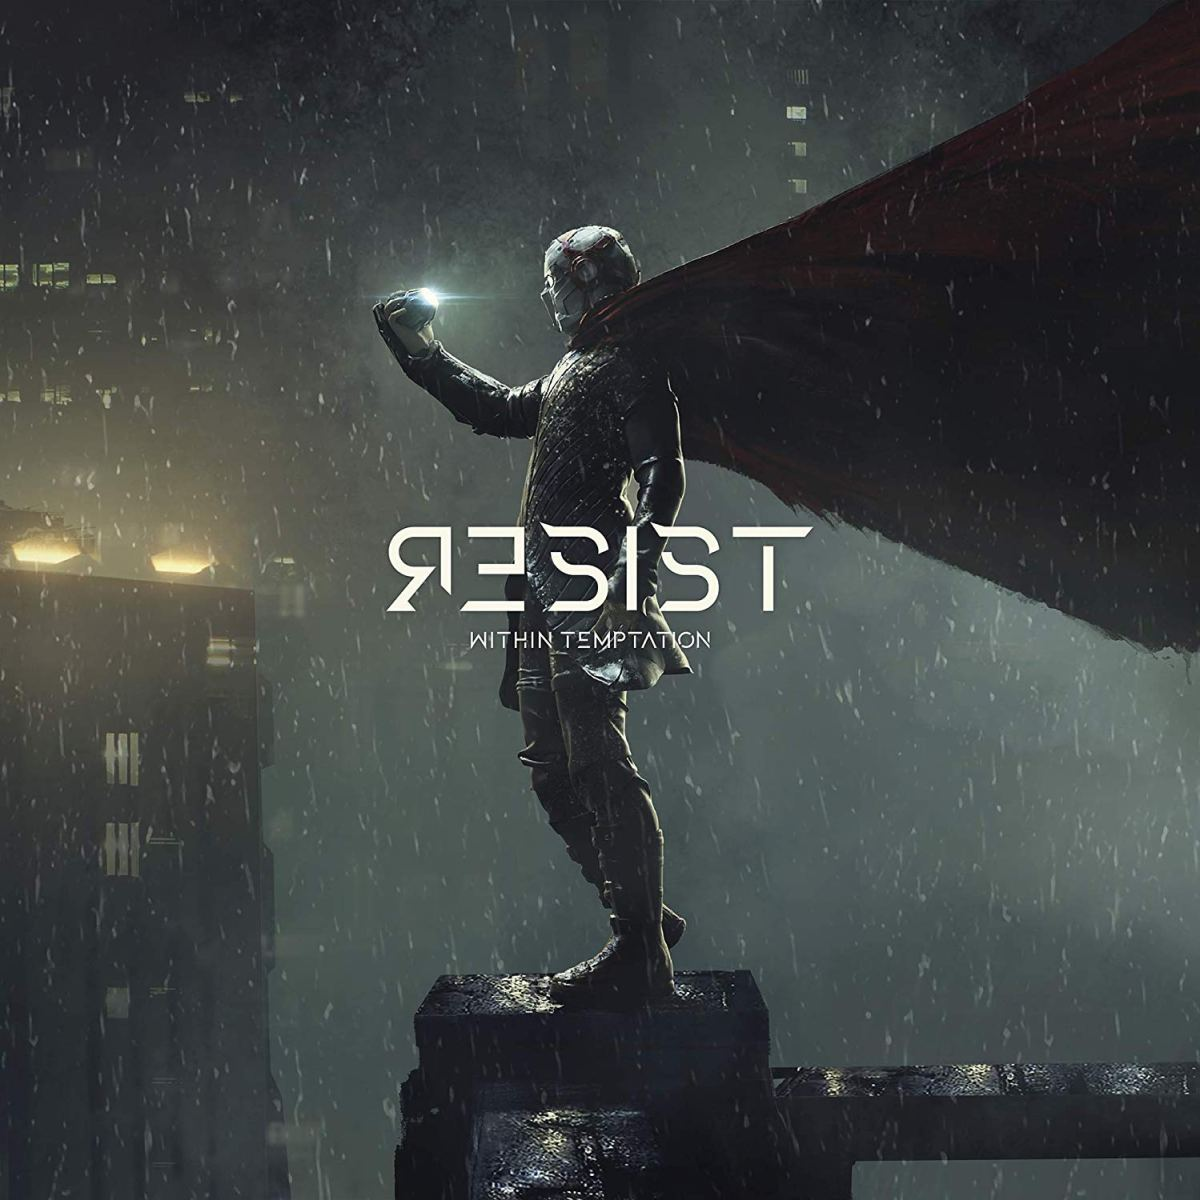 """Music: Within Temptation's dystopian Sci-Fi video for """"Raise"""